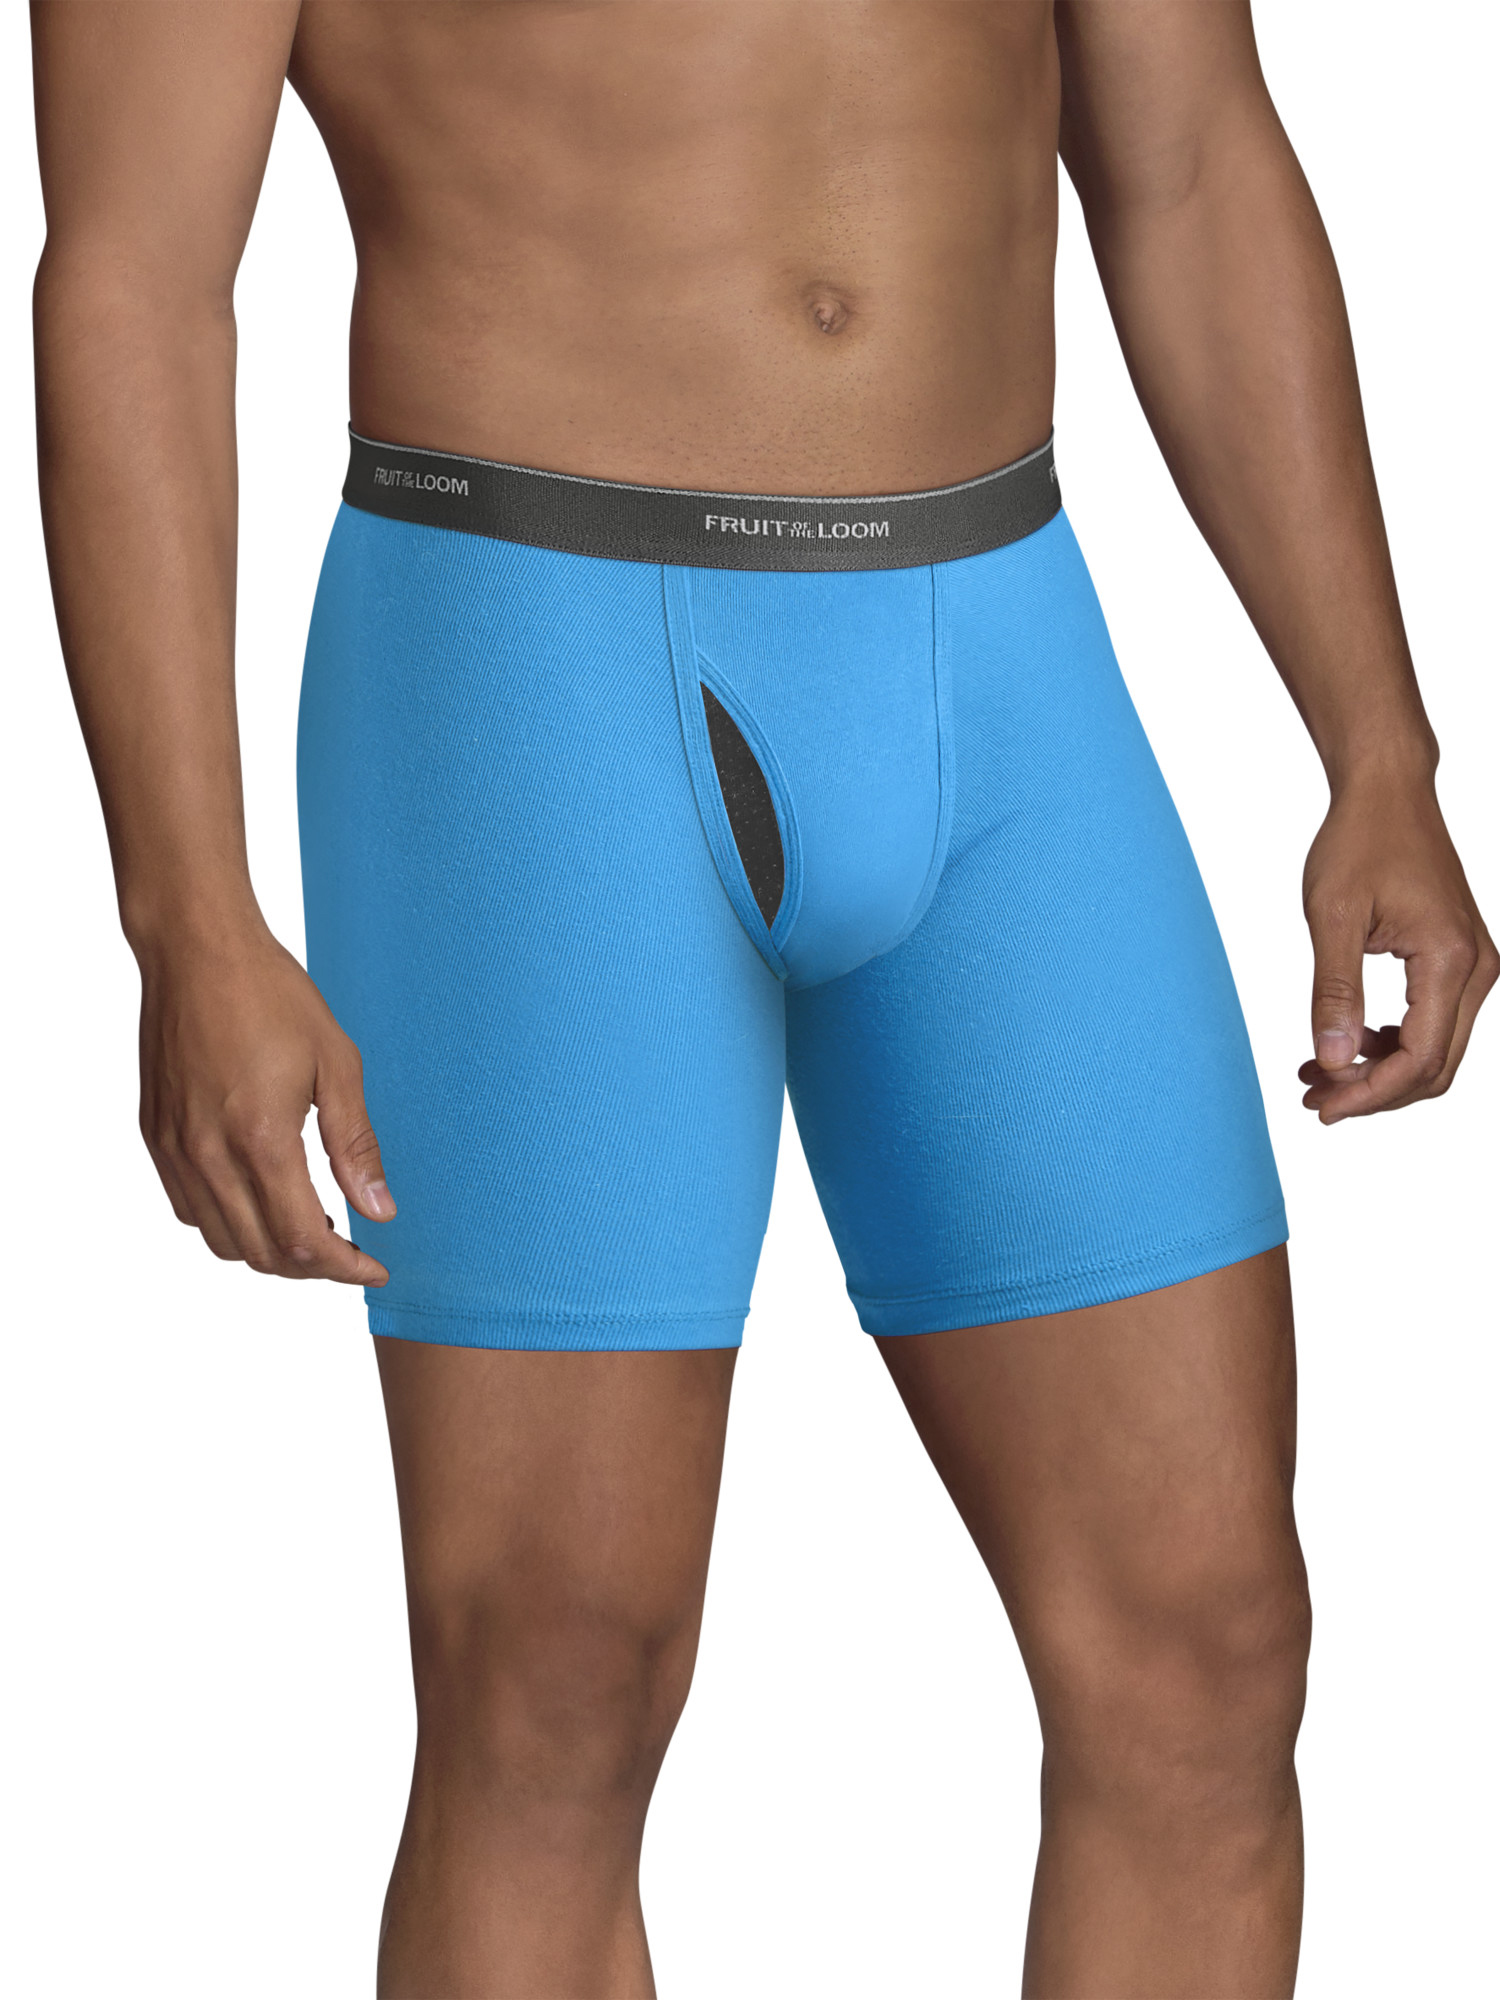 Men's CoolZone Fly Dual Defense Assorted Boxer Briefs, 5 Pack